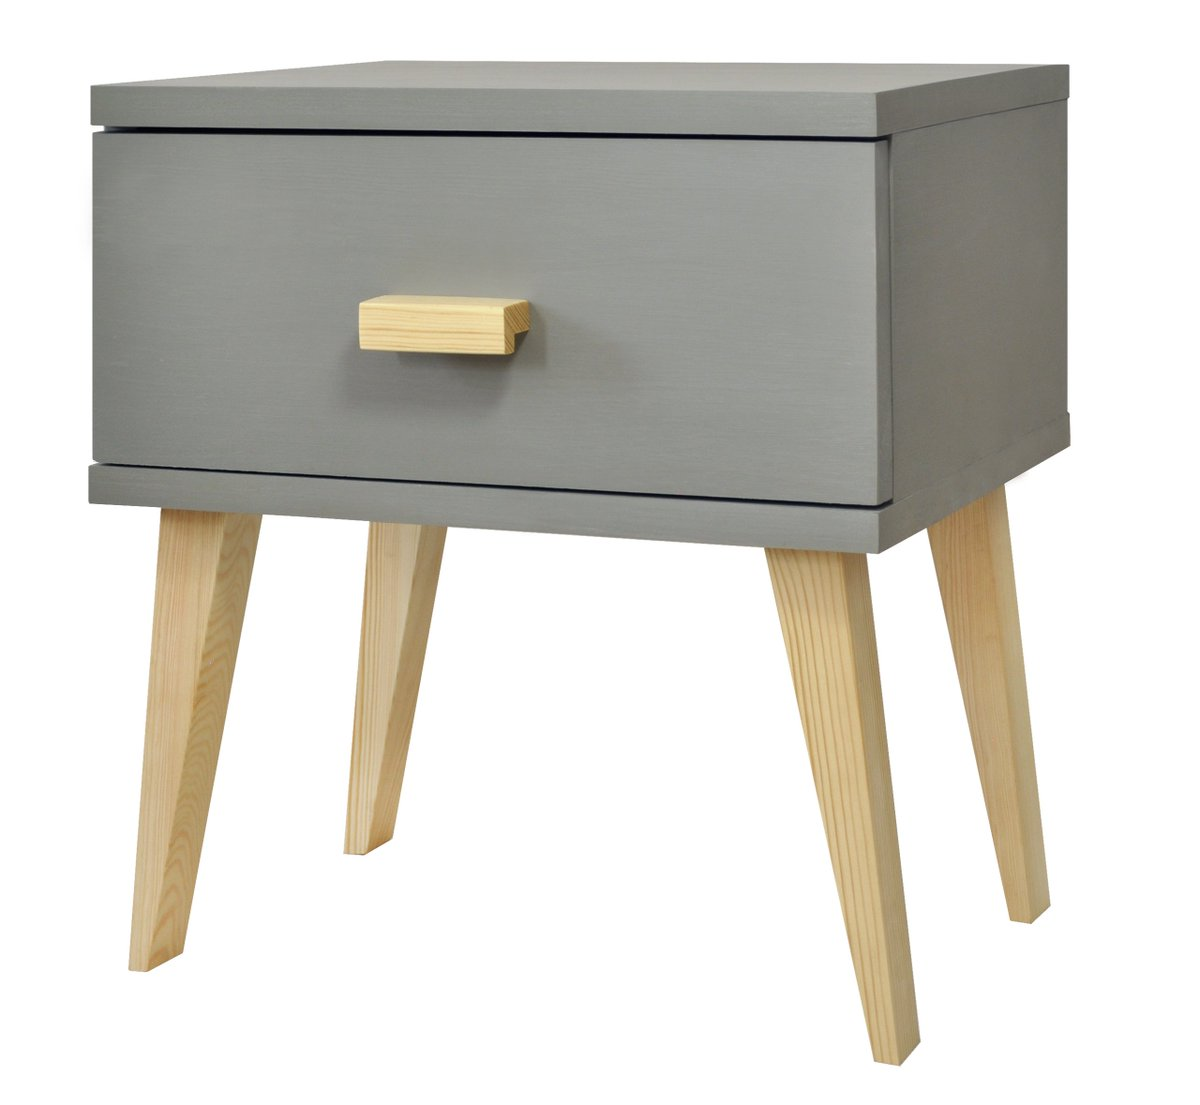 apro group ltd on twitter on of our bedside tables is now